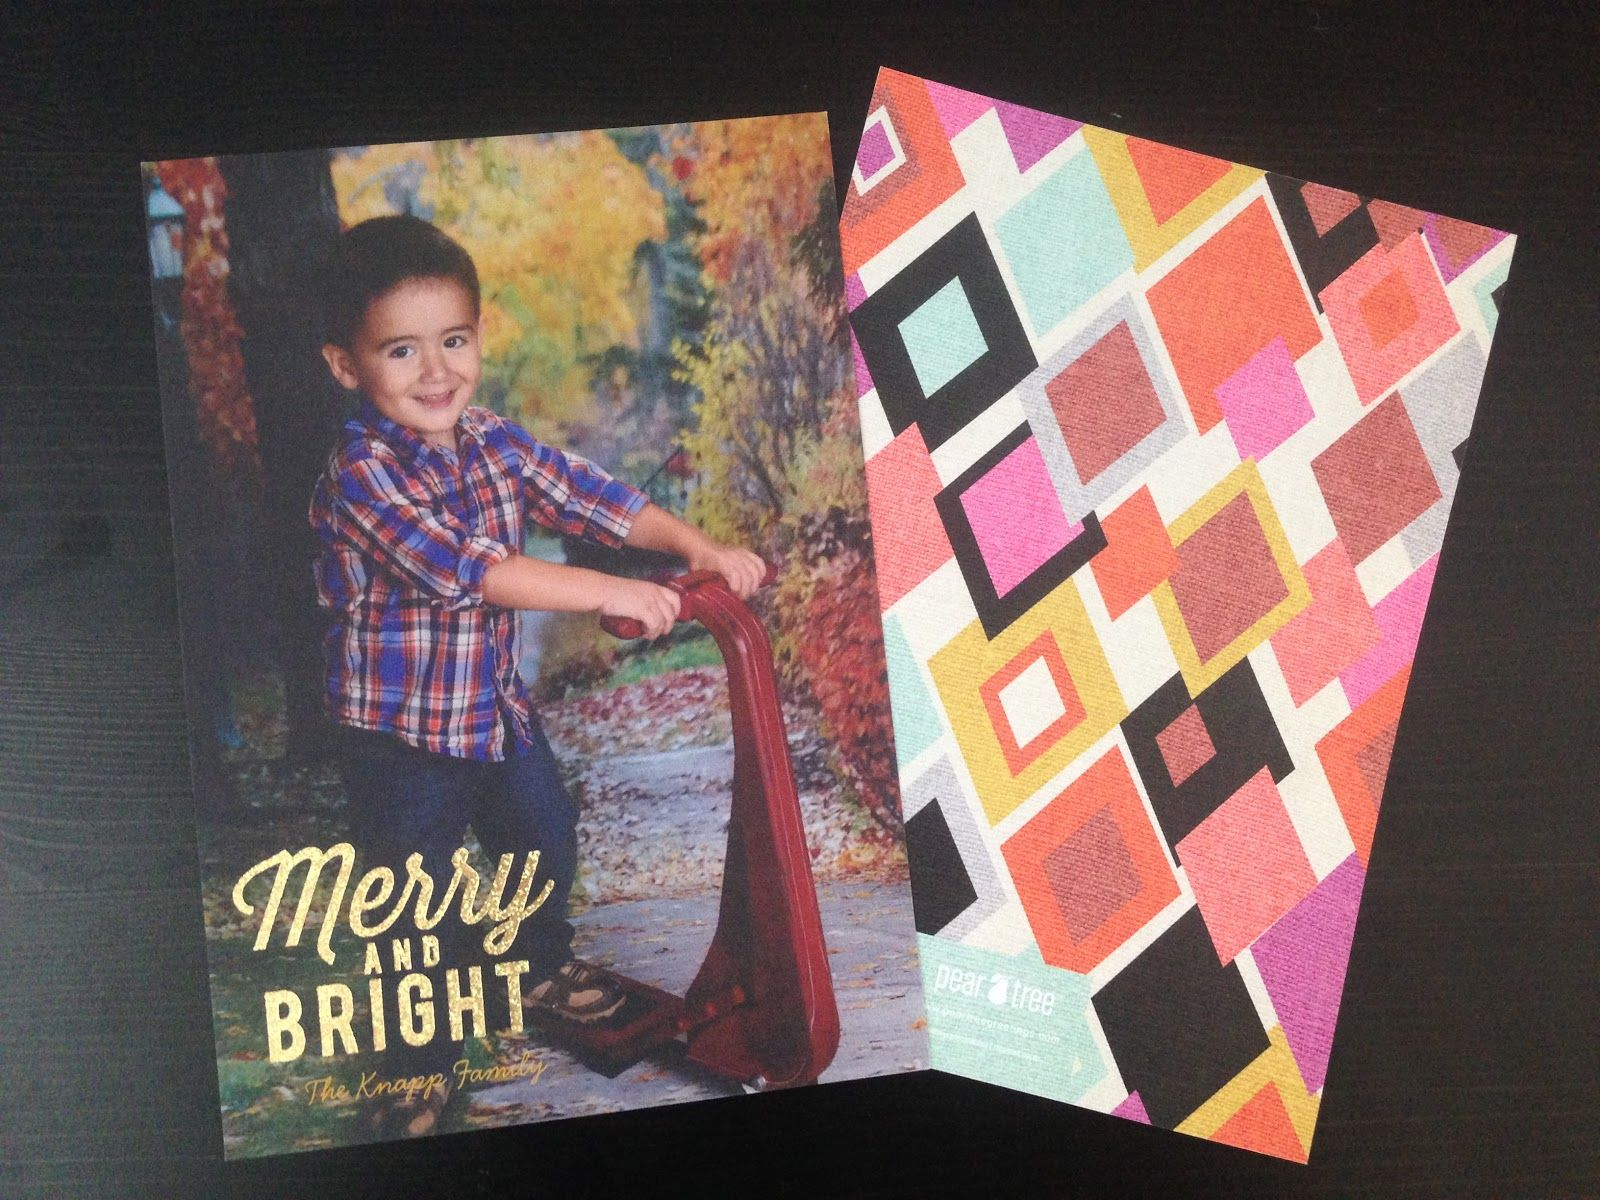 Outnumbered 3 to 1 beautiful holiday photo cards from pear tree outnumbered 3 to 1 beautiful holiday photo cards from pear tree greetings kristyandbryce Gallery